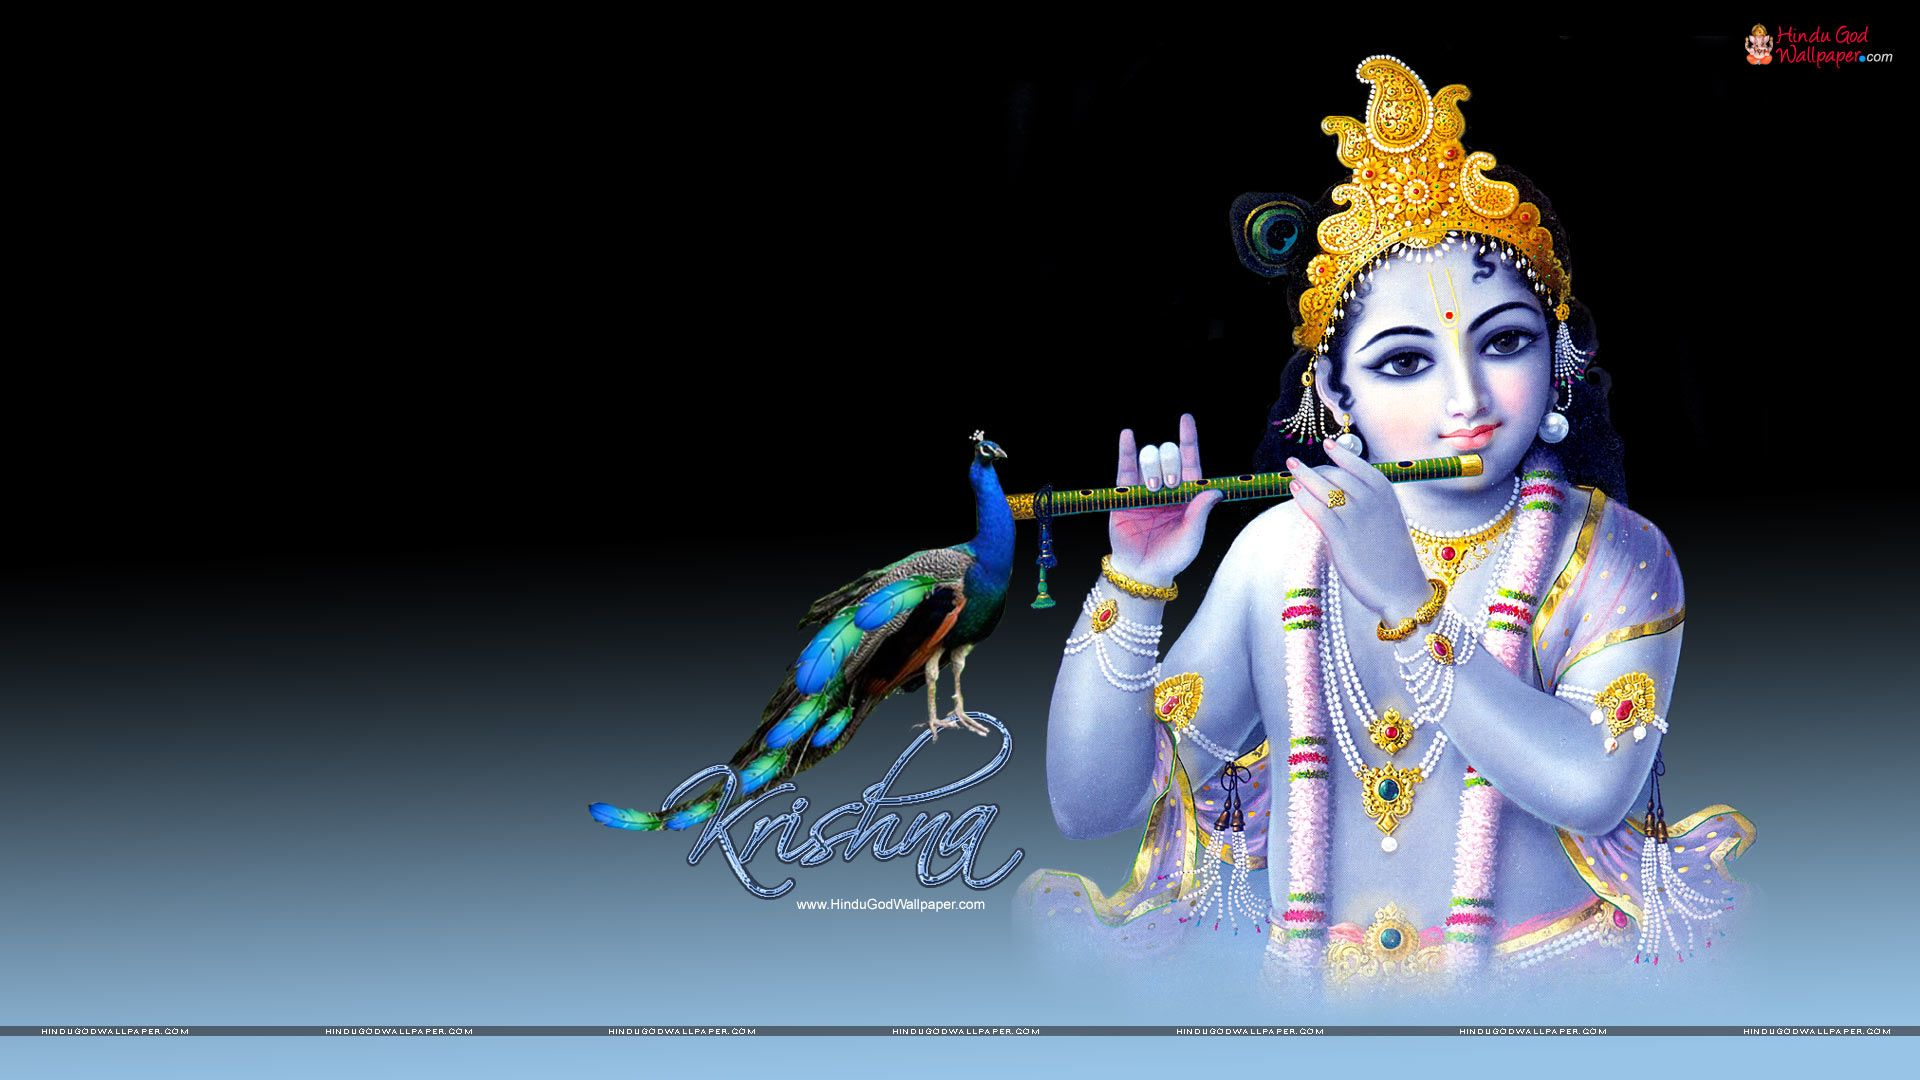 bal krishna hd full size wallpapers free download bal